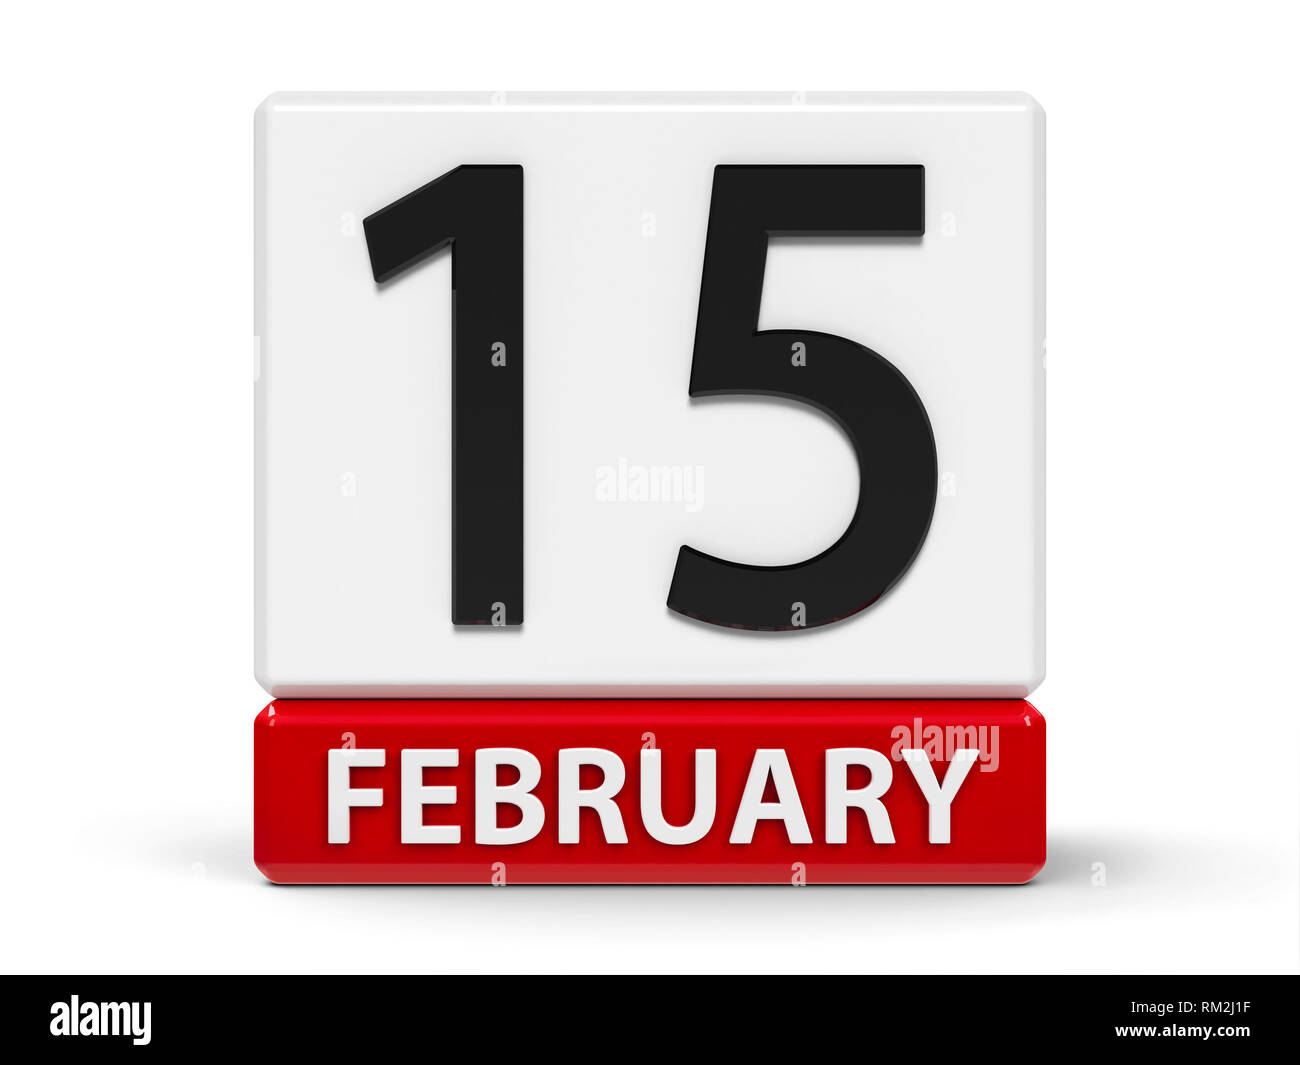 Red and white calendar icon from cubes - The Fifteenth of February - on a white table - International Childhood Cancer Day and National Flag of Canada - Stock Image